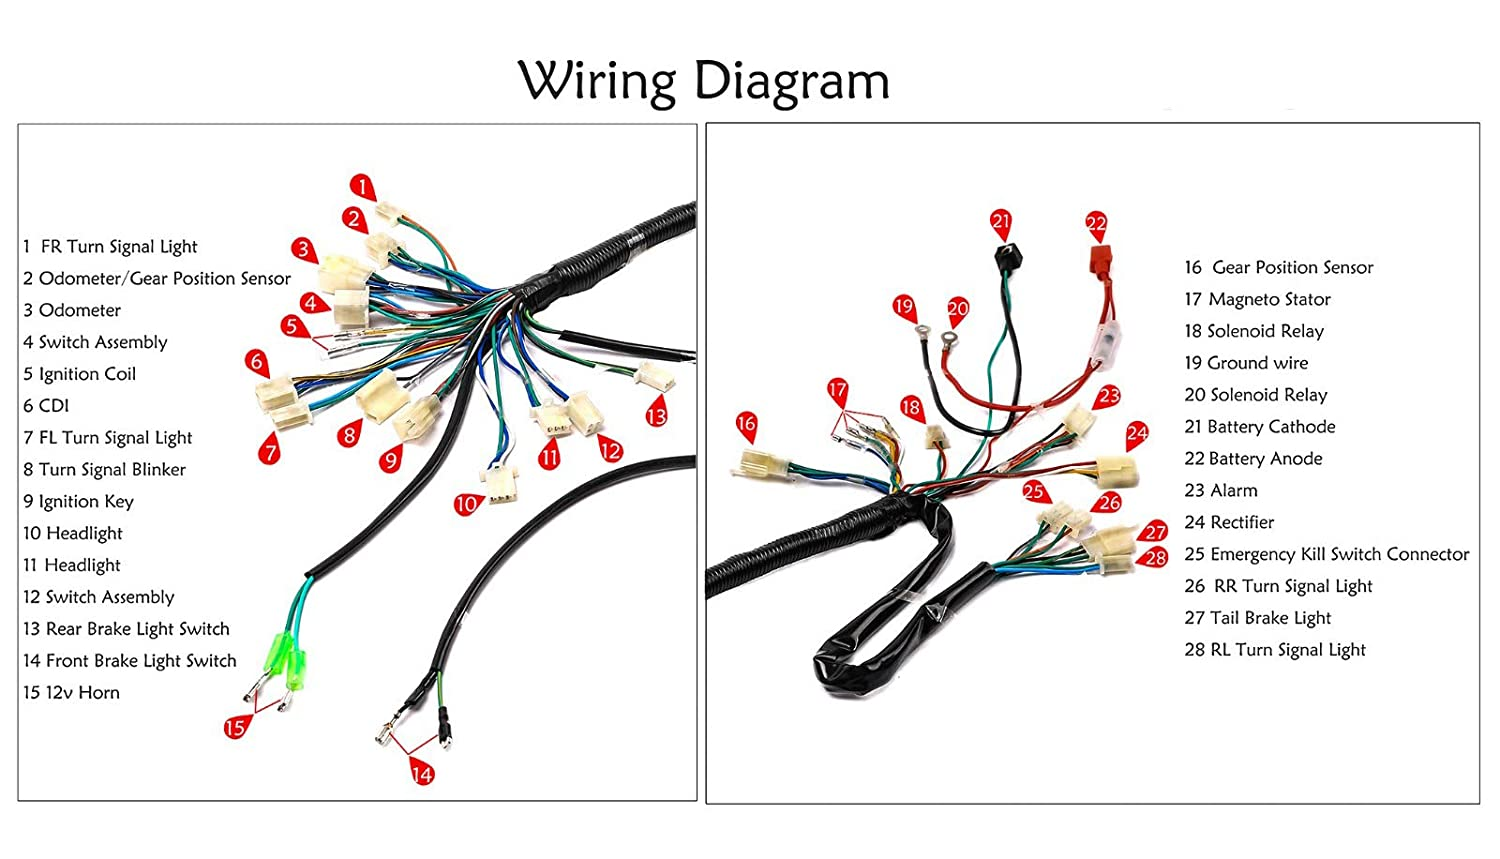 Diagram Lifan Wiring Diagram Chinese Atv Cdi Wiring Diagram Remote Atv